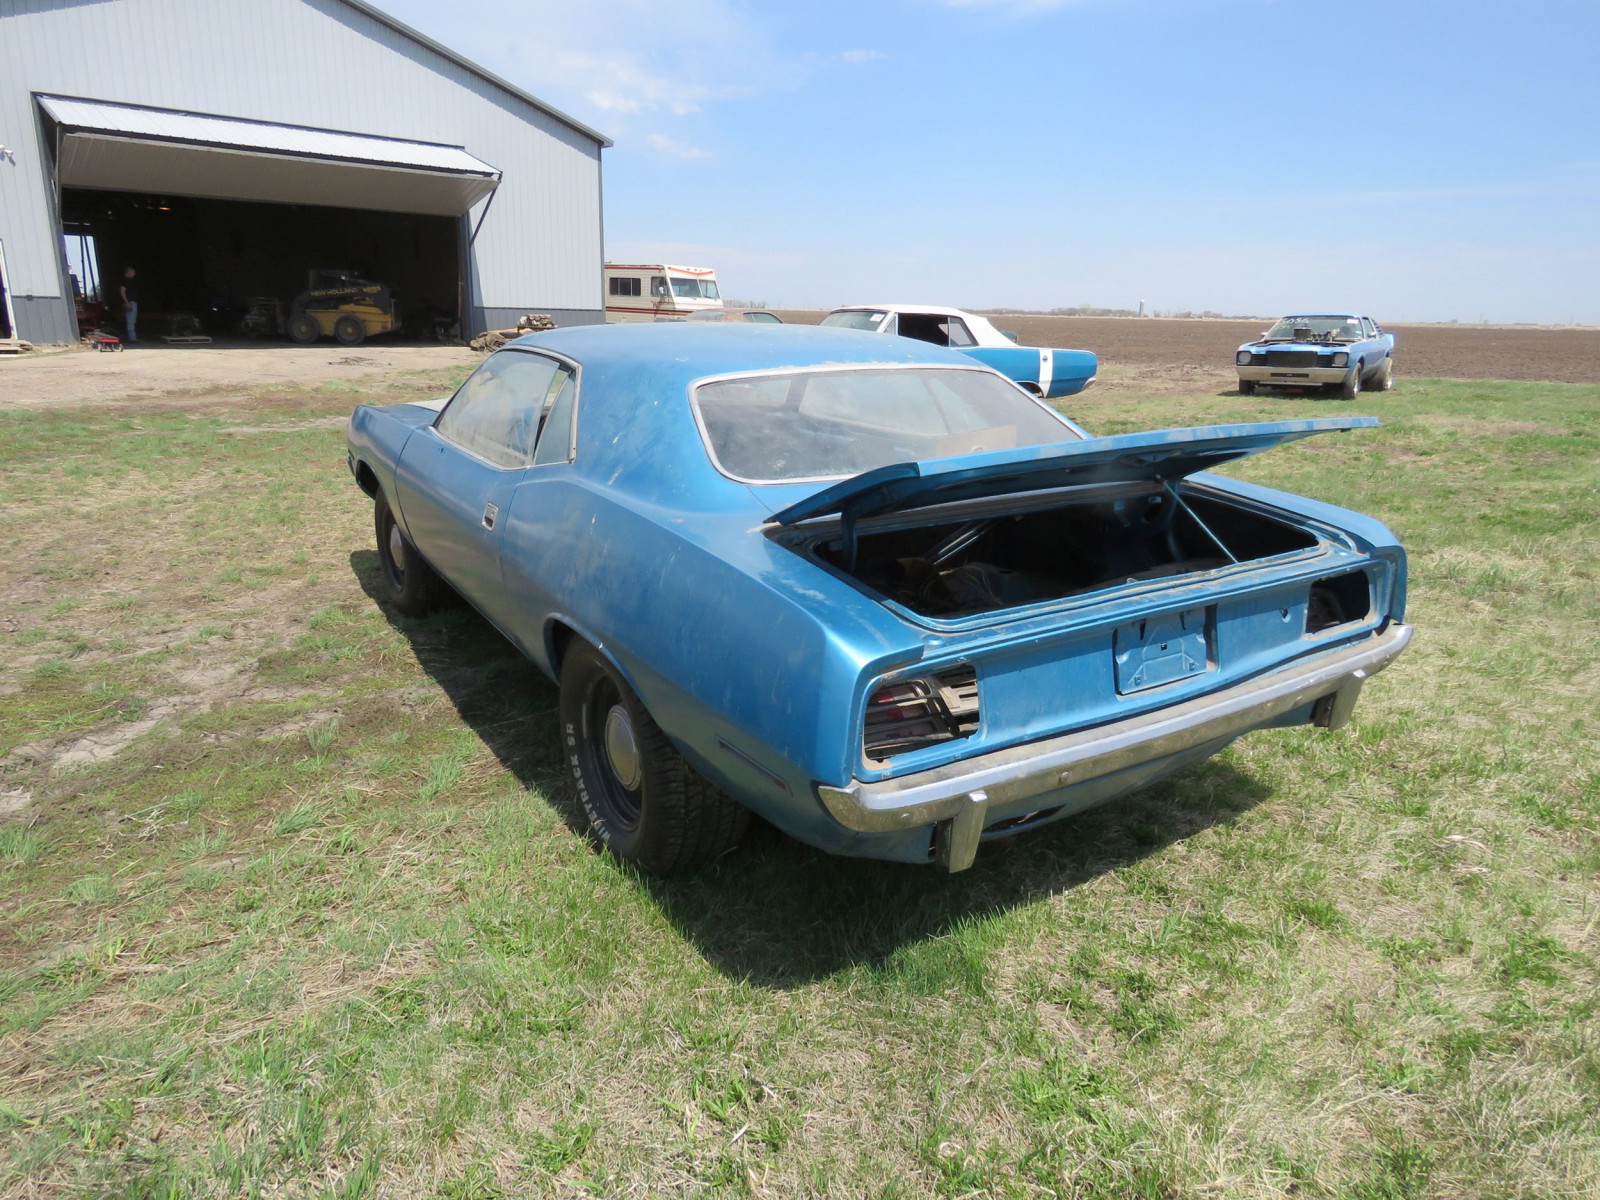 1970 Plymouth Cuda Coupe - Image 7